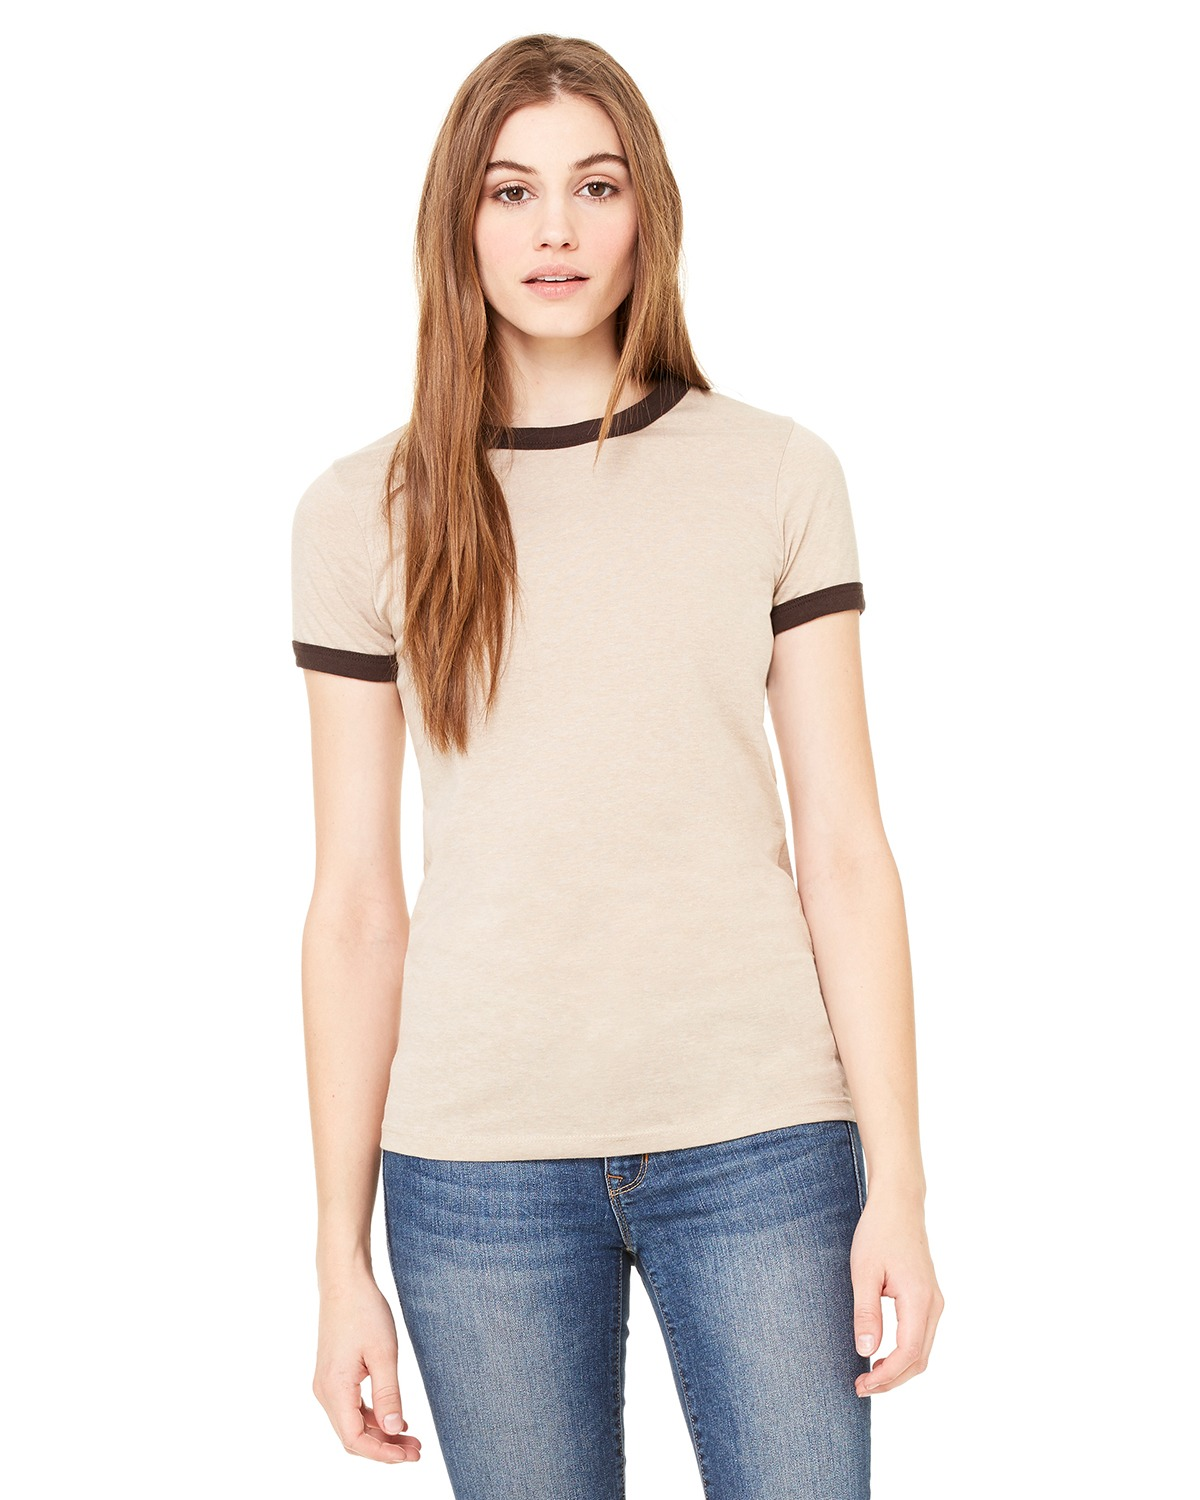 Bella + Canvas B6050 Women Jersey short sleeve Ringer TShirt Hthr Tan/Chocolate at GotApparel